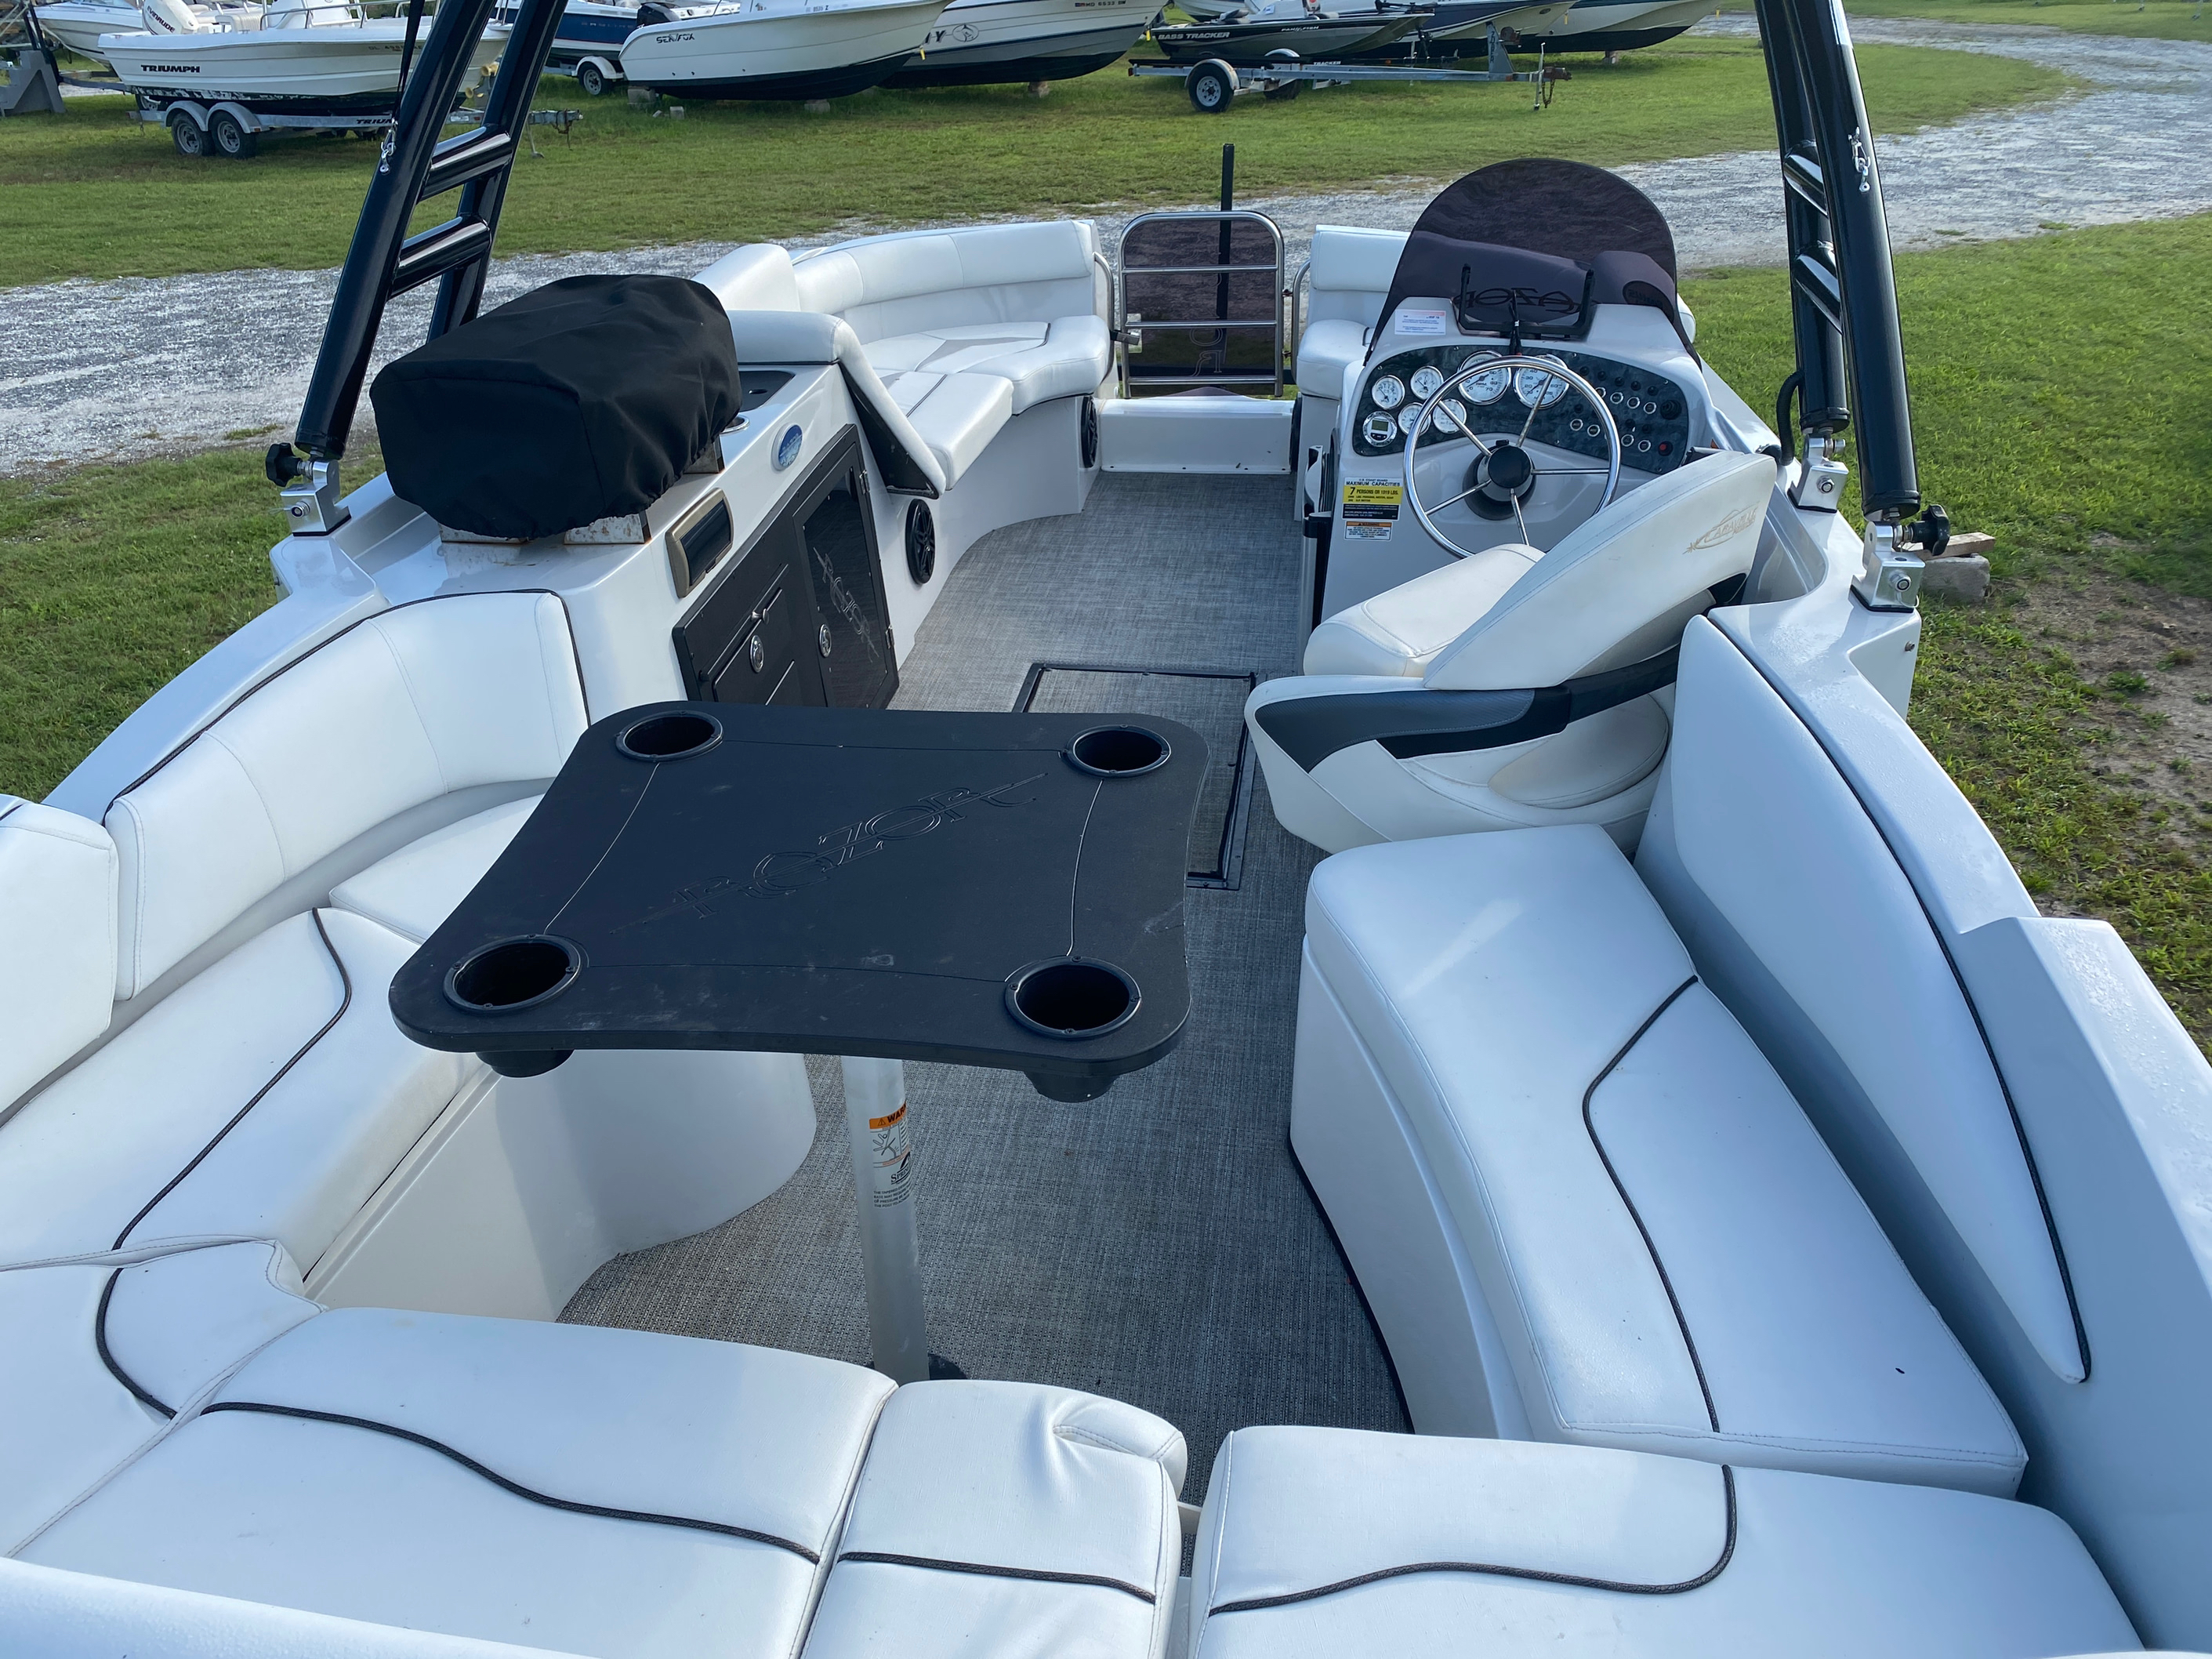 2019 Caravelle boat for sale, model of the boat is 219DD Deck Boat & Image # 5 of 14